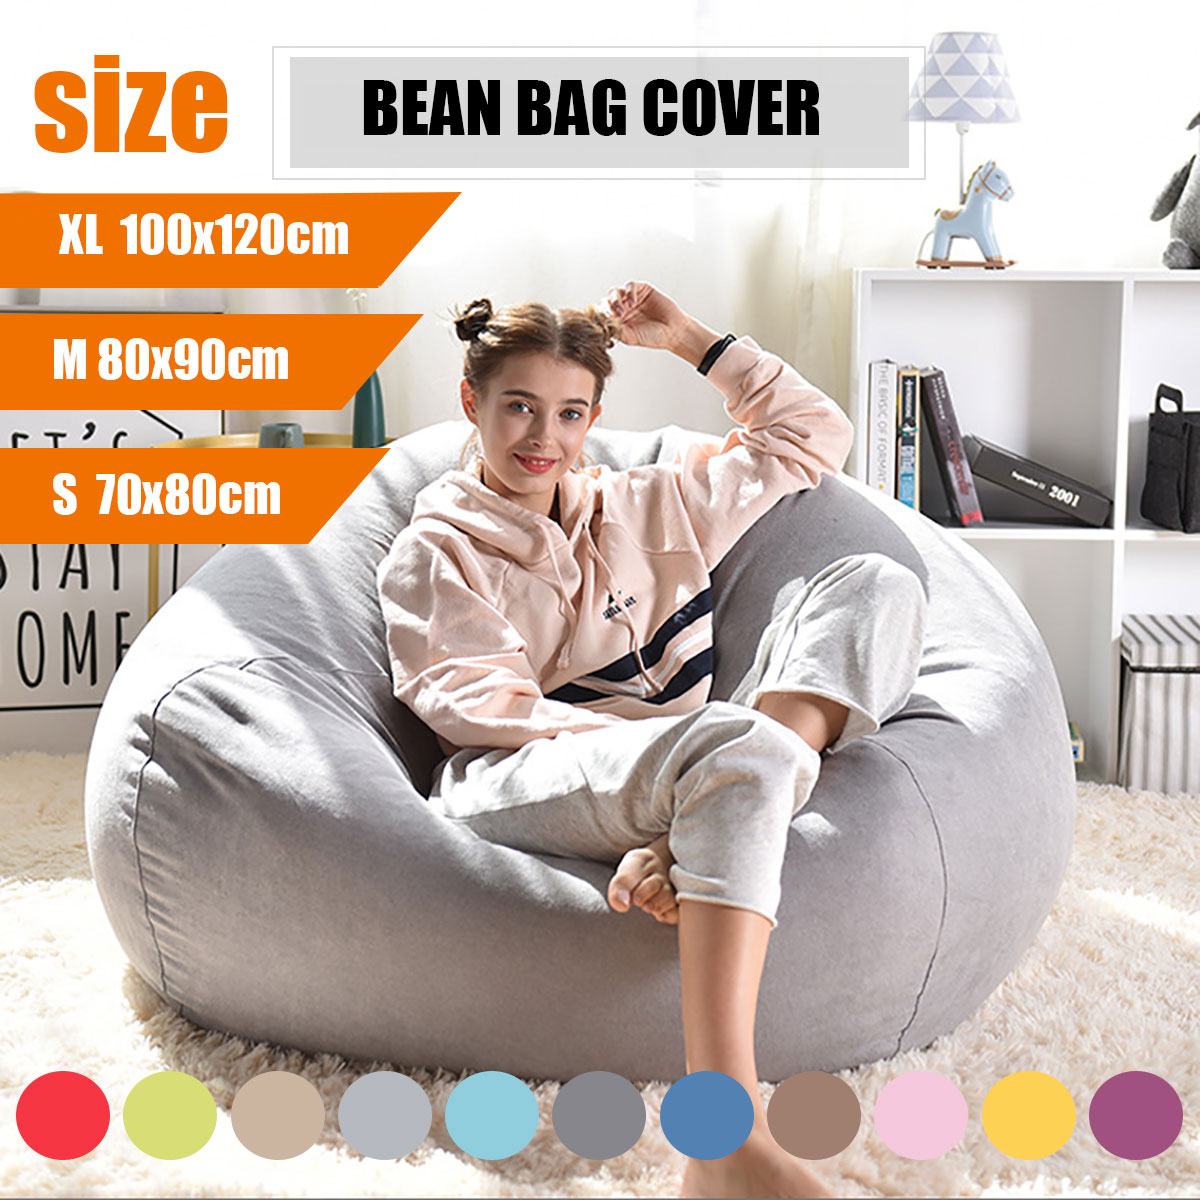 lazy-beanbag-sofas-cover-chairs-without-filler-linen-cloth-lounger-seat-bean-bag-puff-asiento-couch-tatami-living-room-furniture